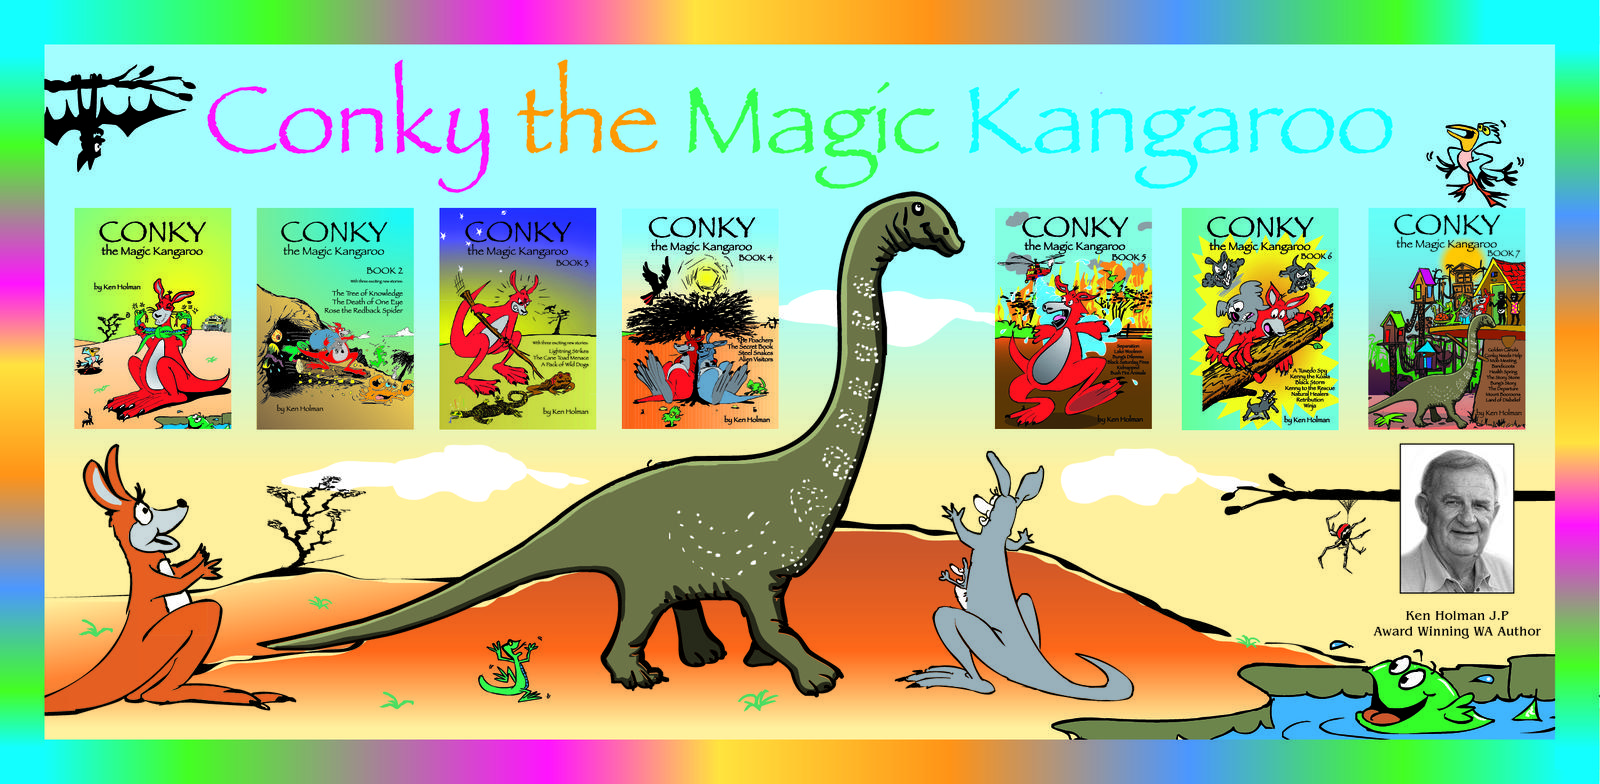 Conky the Magic Kangaroo 3